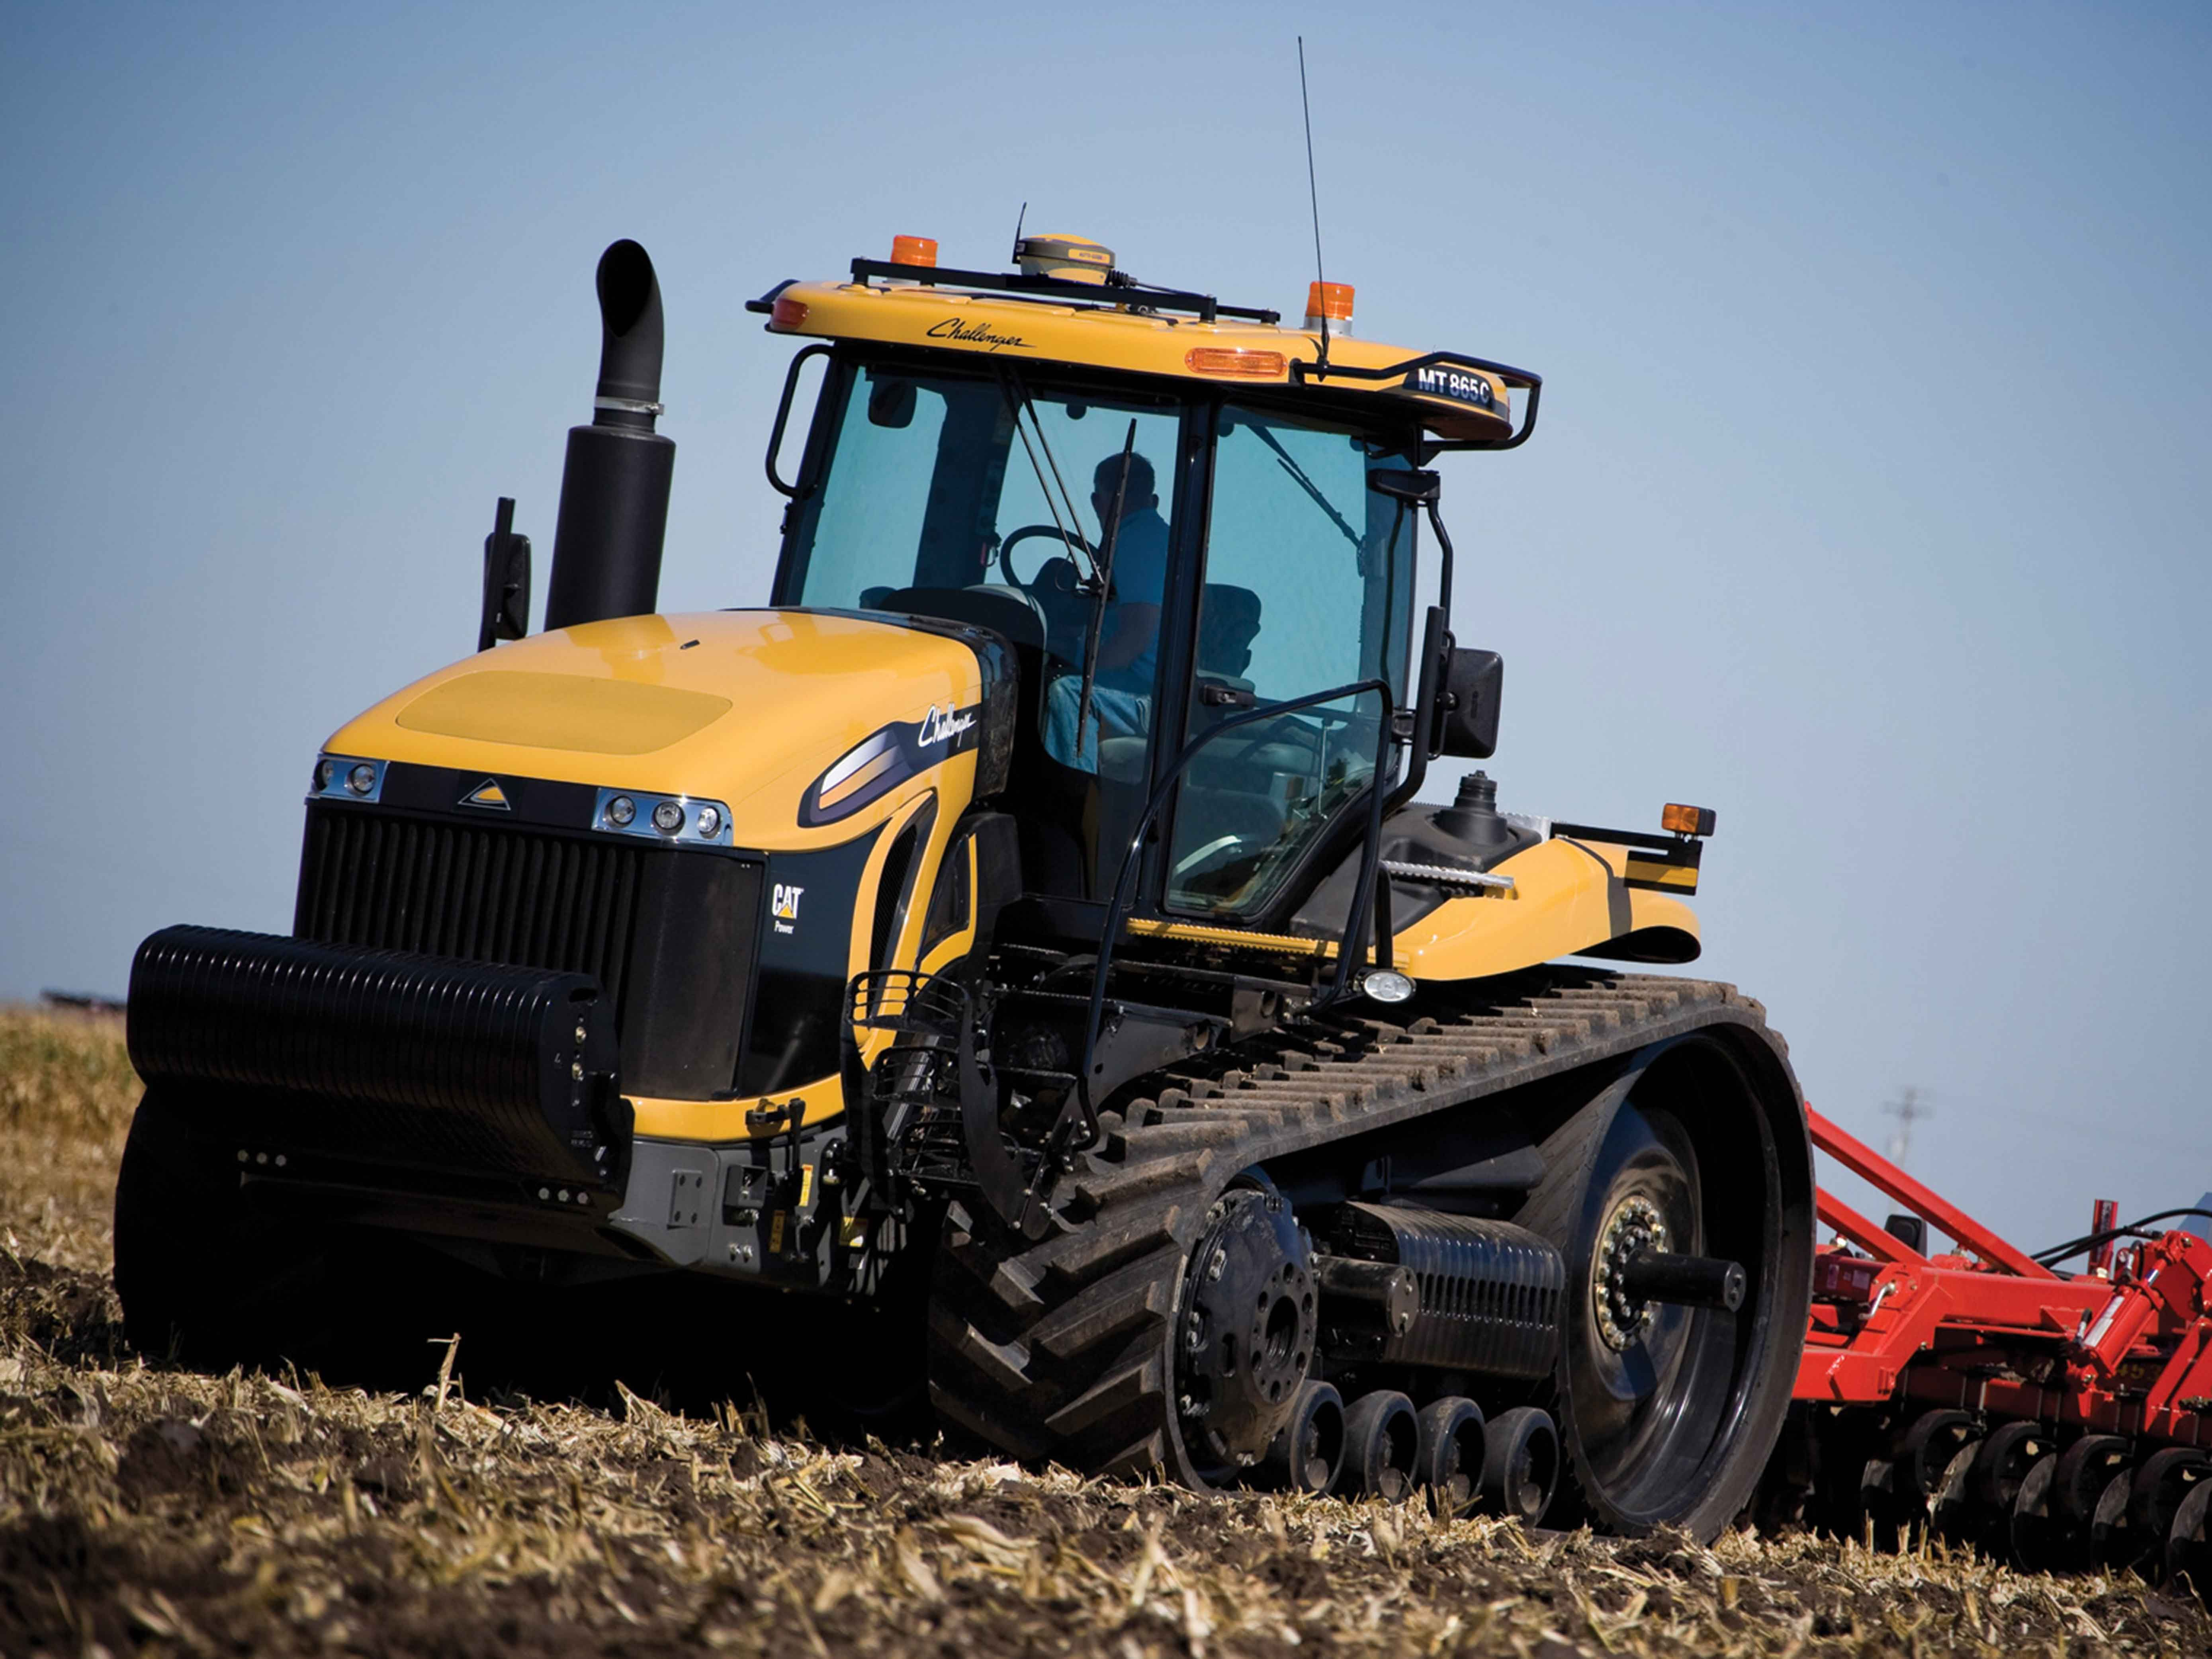 HOLT CAT sells, services and rents heavy equipment